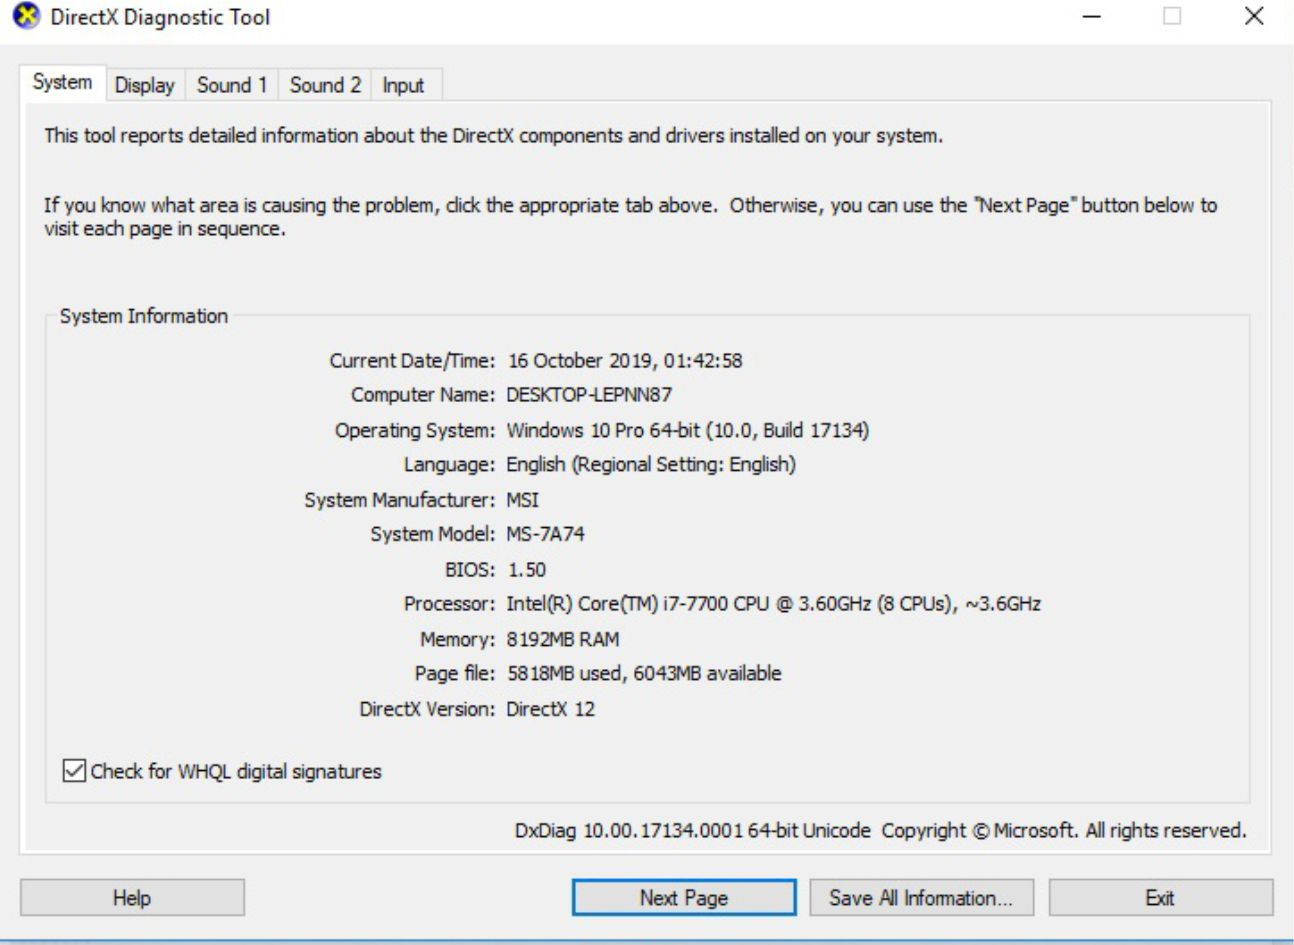 Contoh Detail Spesifikasi Komputer Windows 10